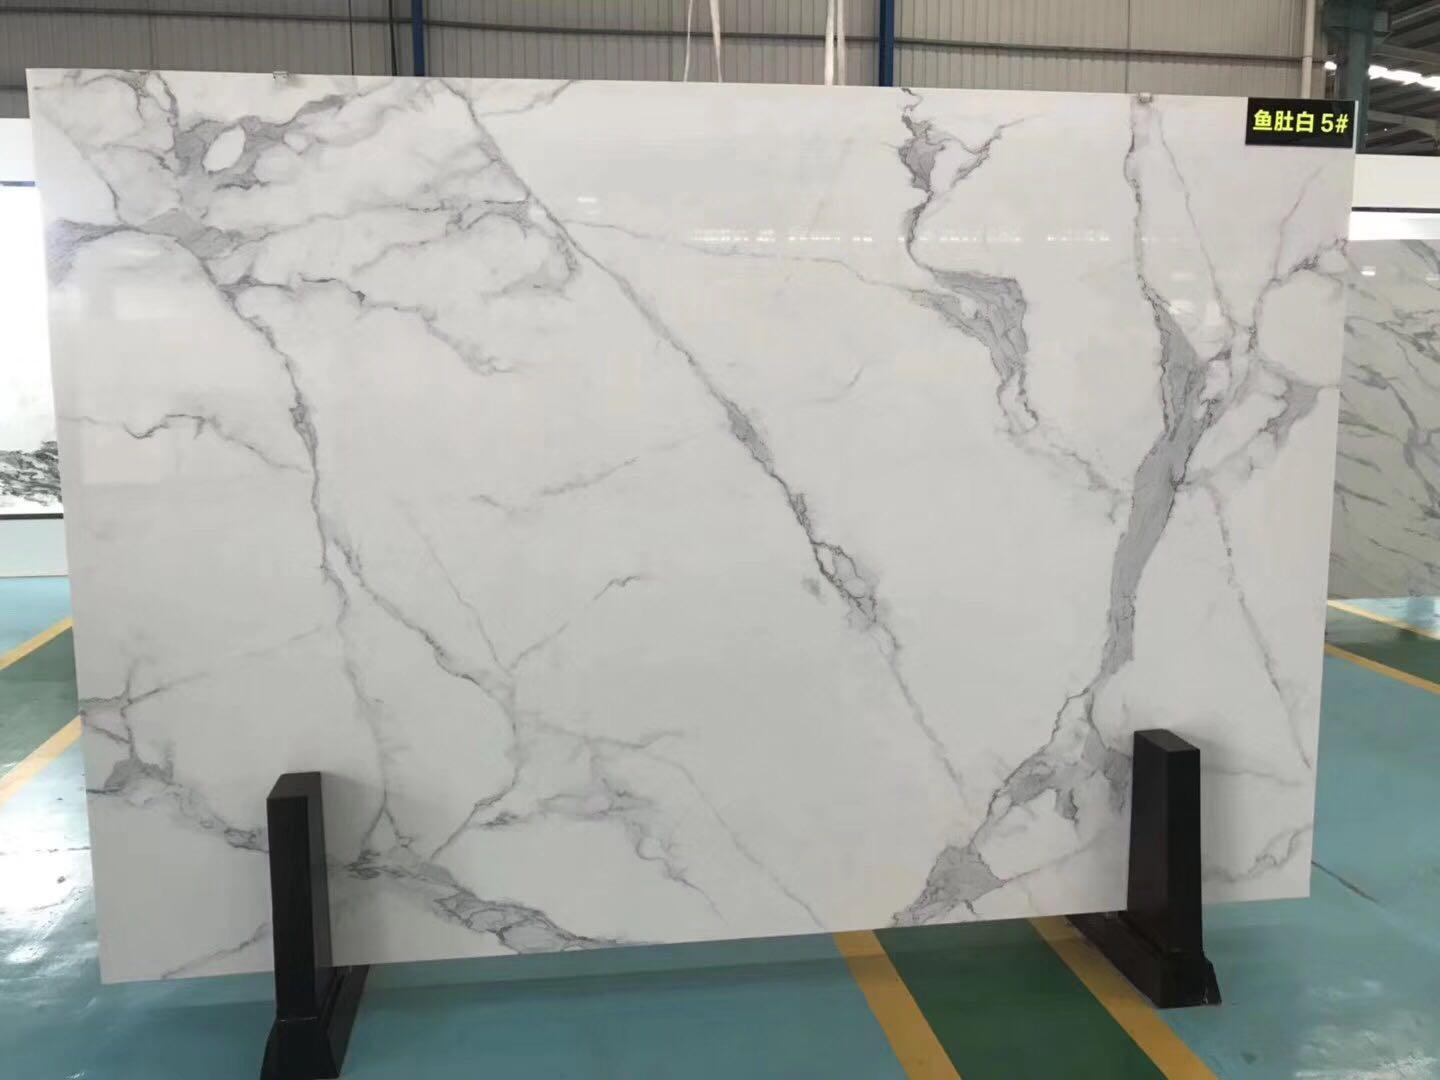 marble stone 3D print artificial marble slabs 2